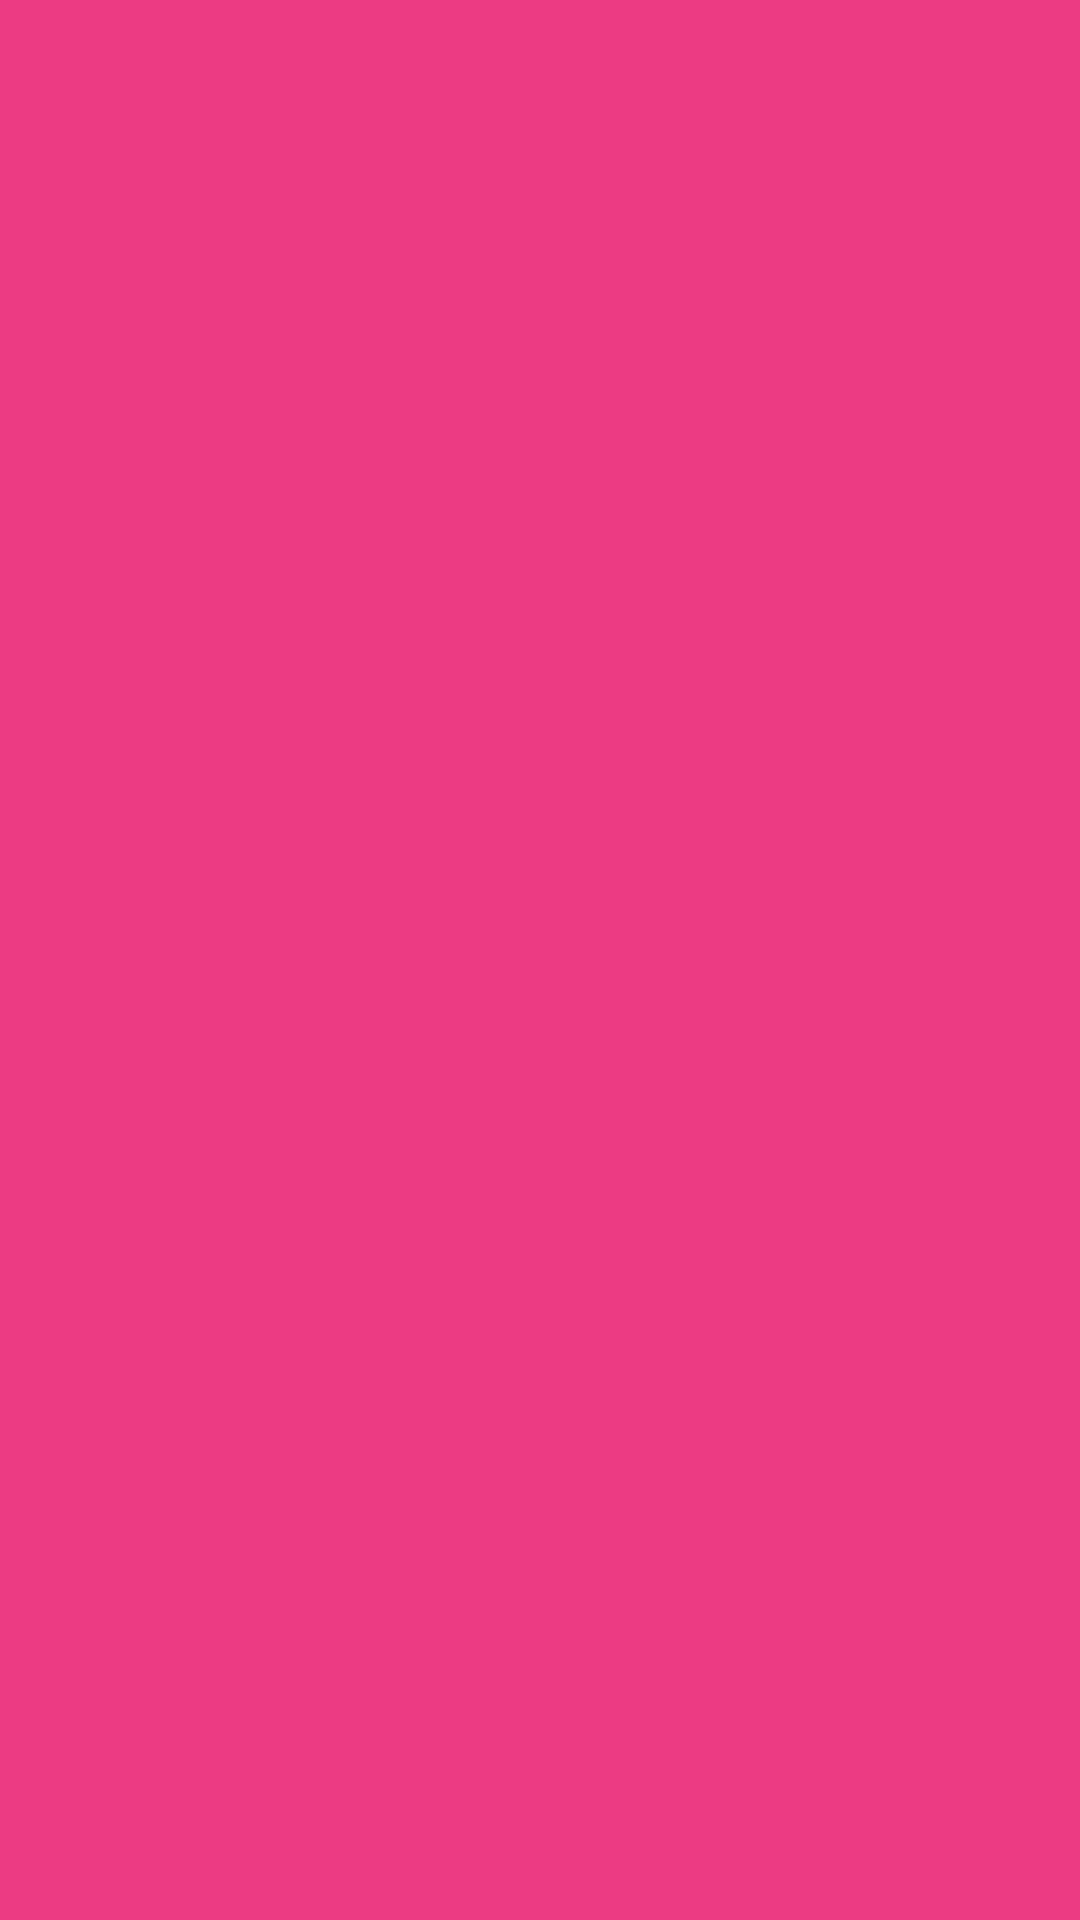 1080x1920 Cerise Pink Solid Color Background